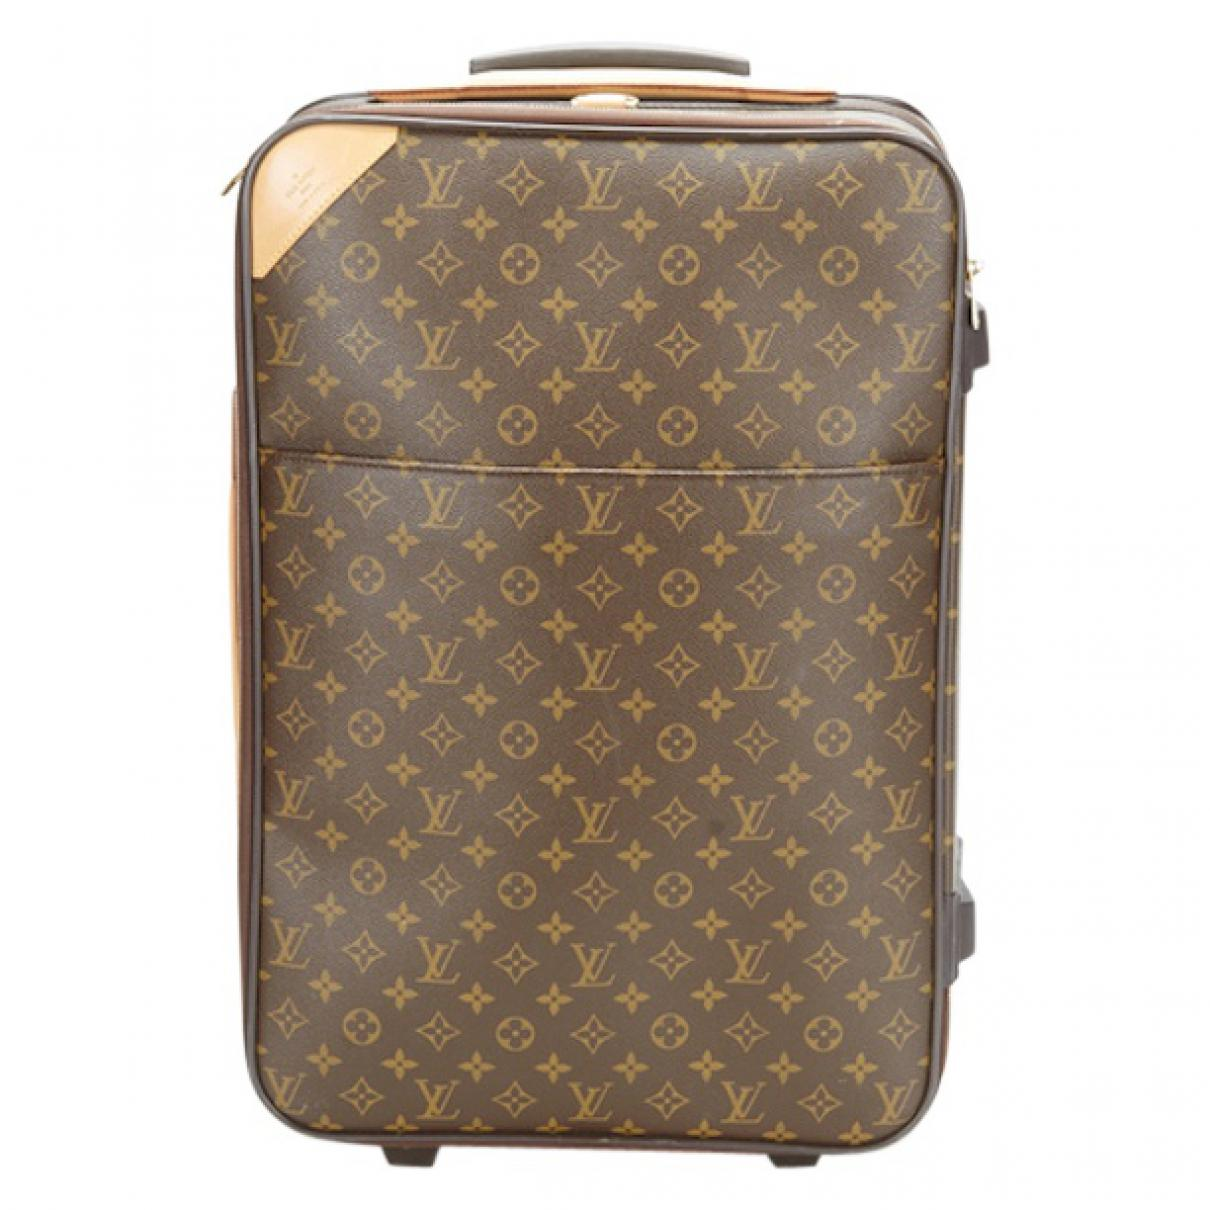 Pre-owned - Pegase cloth travel bag Louis Vuitton Tc9leiZ